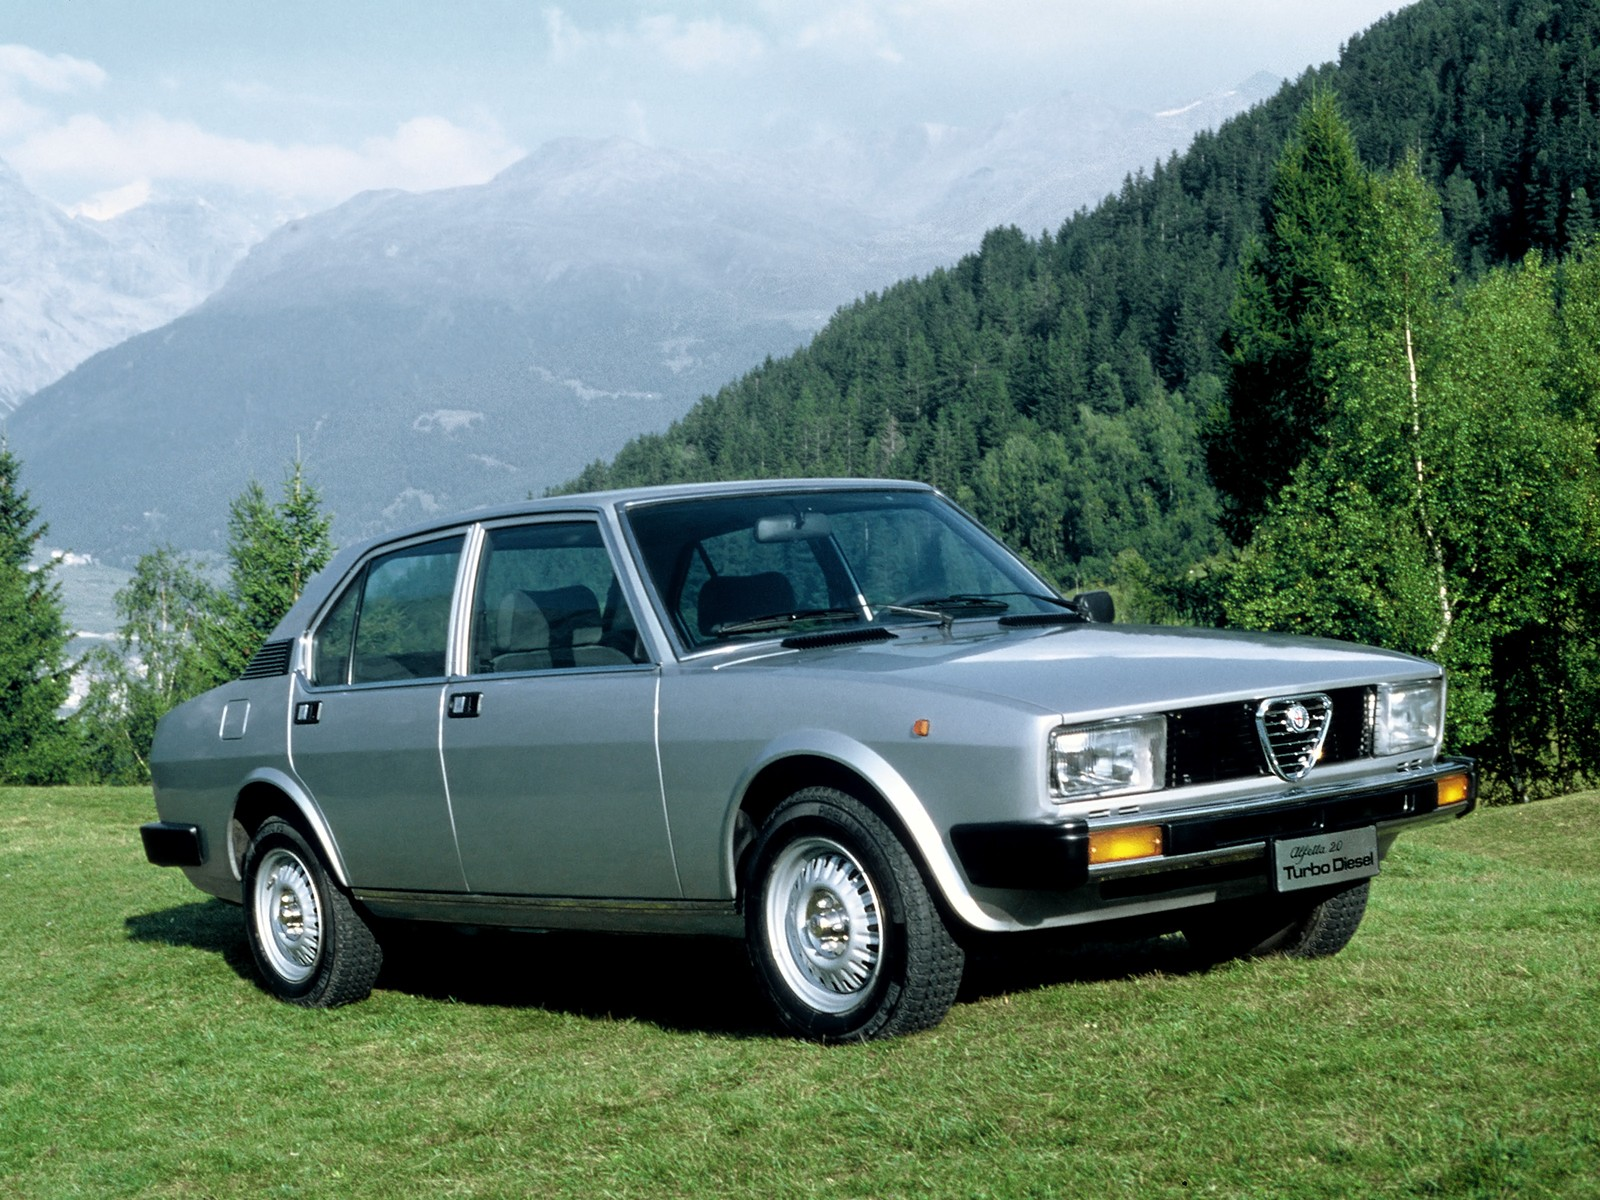 alfa romeo alfetta specs 1979 1980 1981 1982 1983 1984 autoevolution. Black Bedroom Furniture Sets. Home Design Ideas